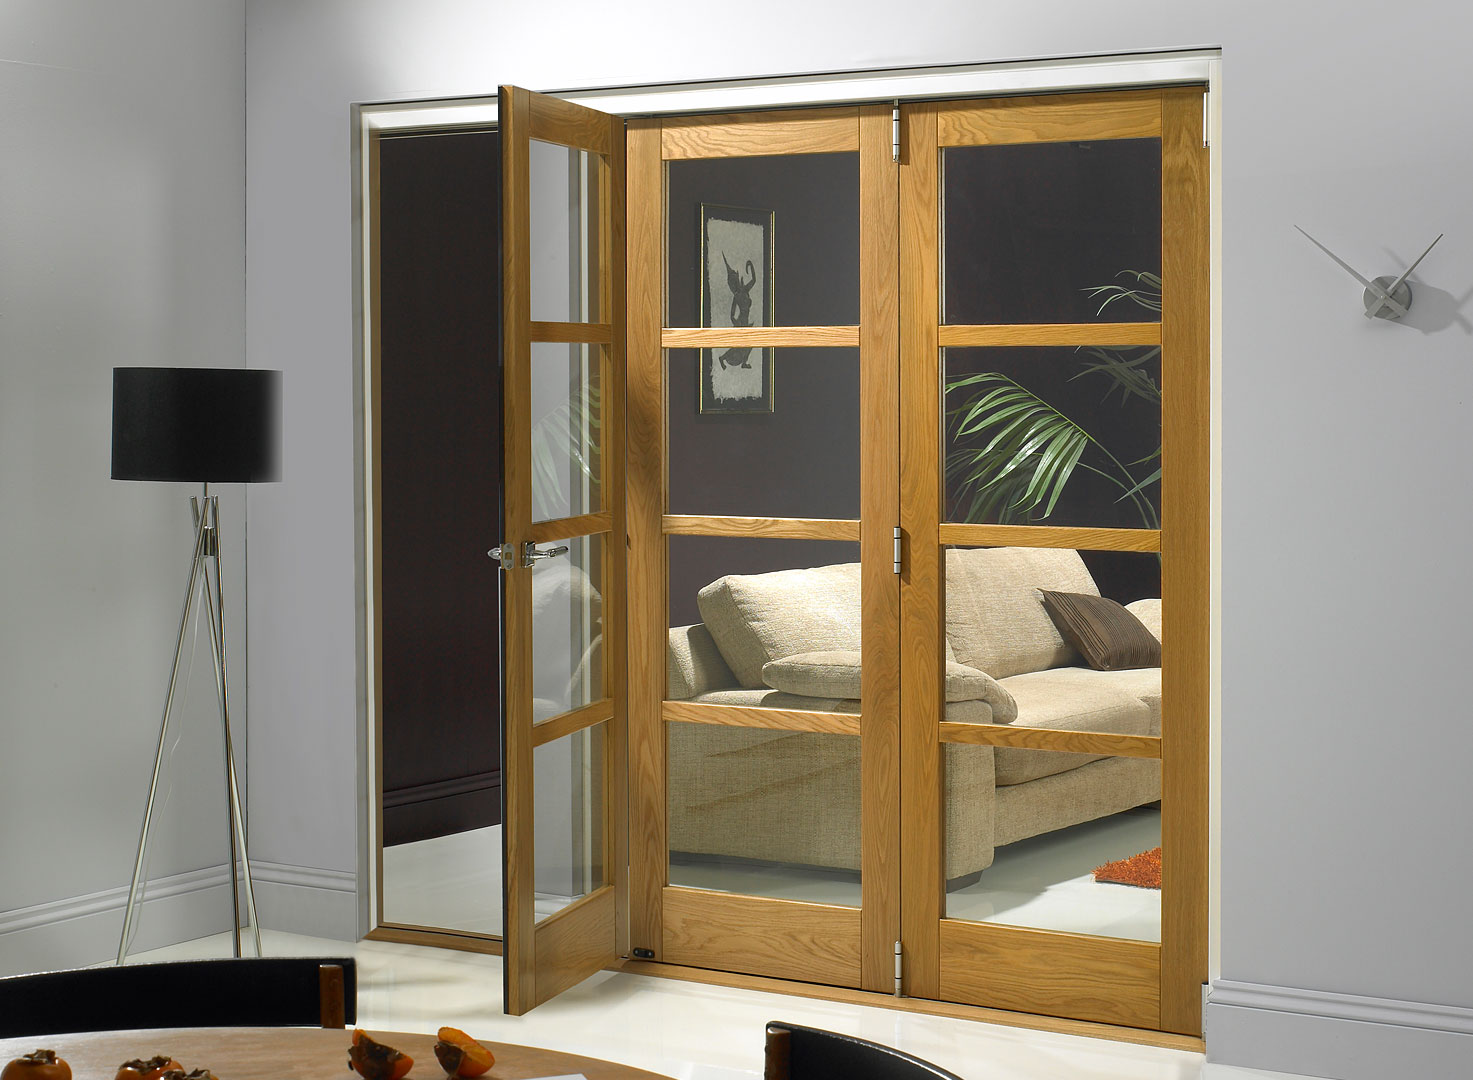 interior-sliding-doors-room-dividers-photo-11